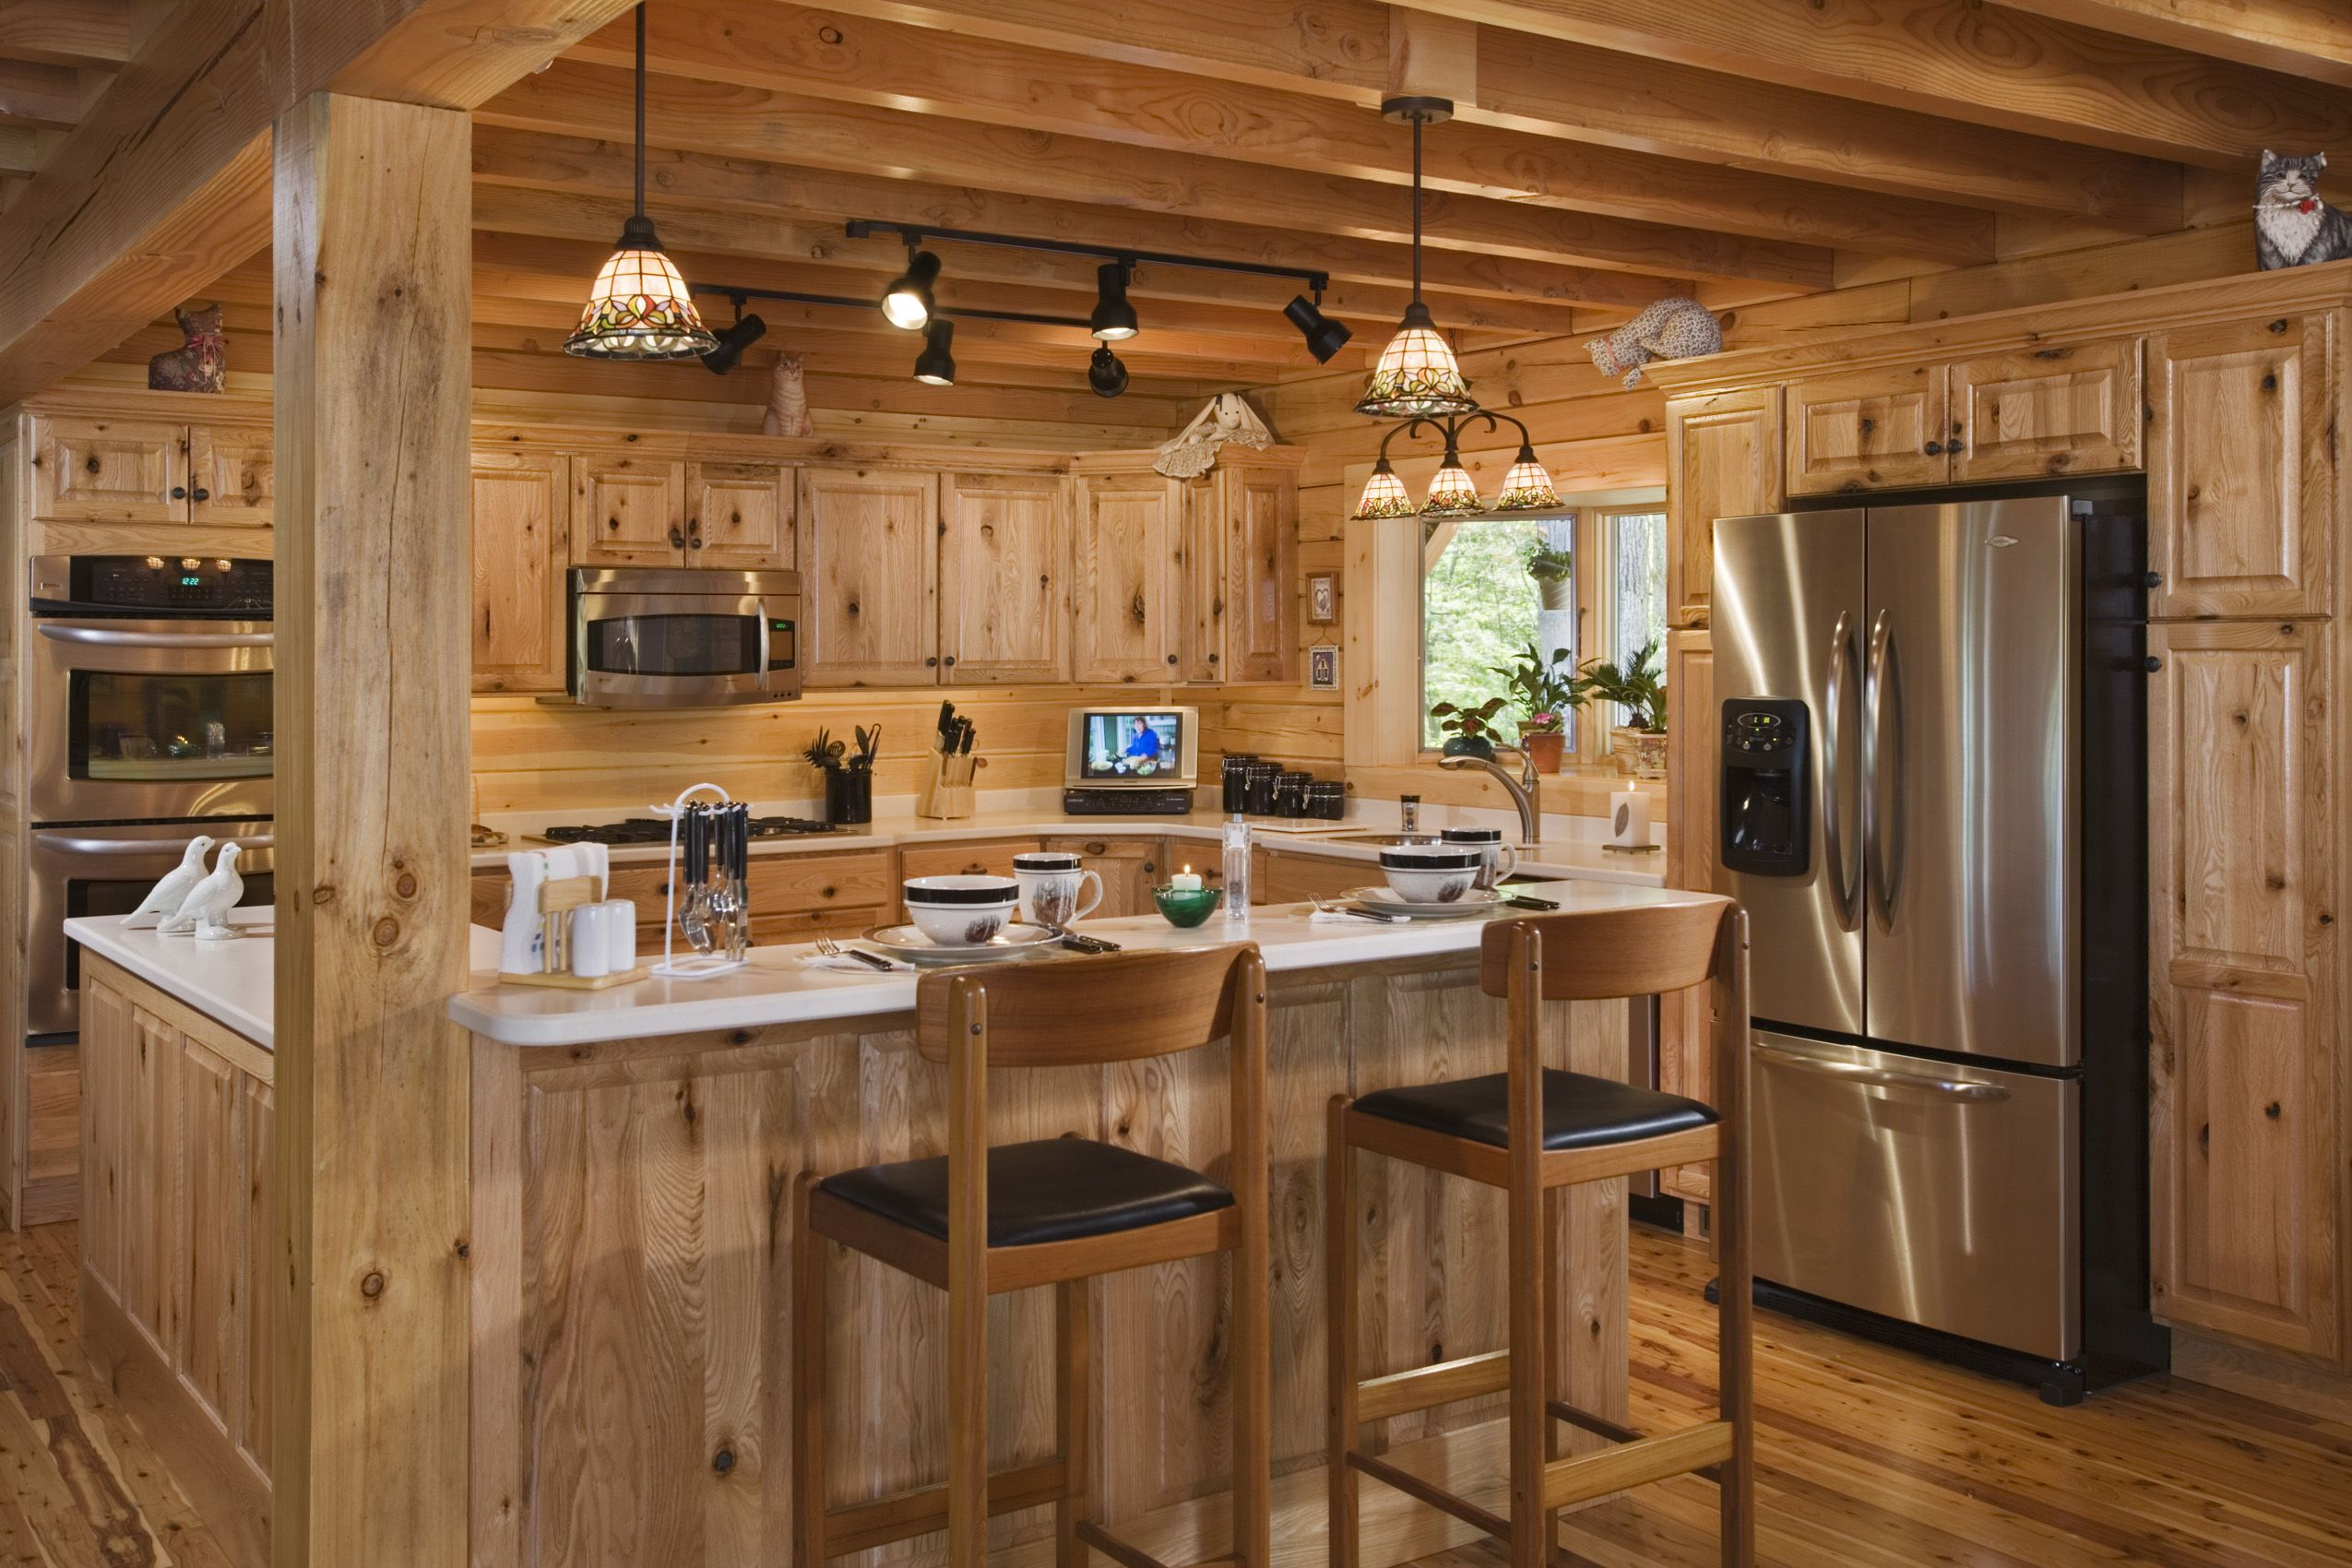 Inside Pictures Of Log Cabins | ... Residence, Grand Vista Bay, Rockwood